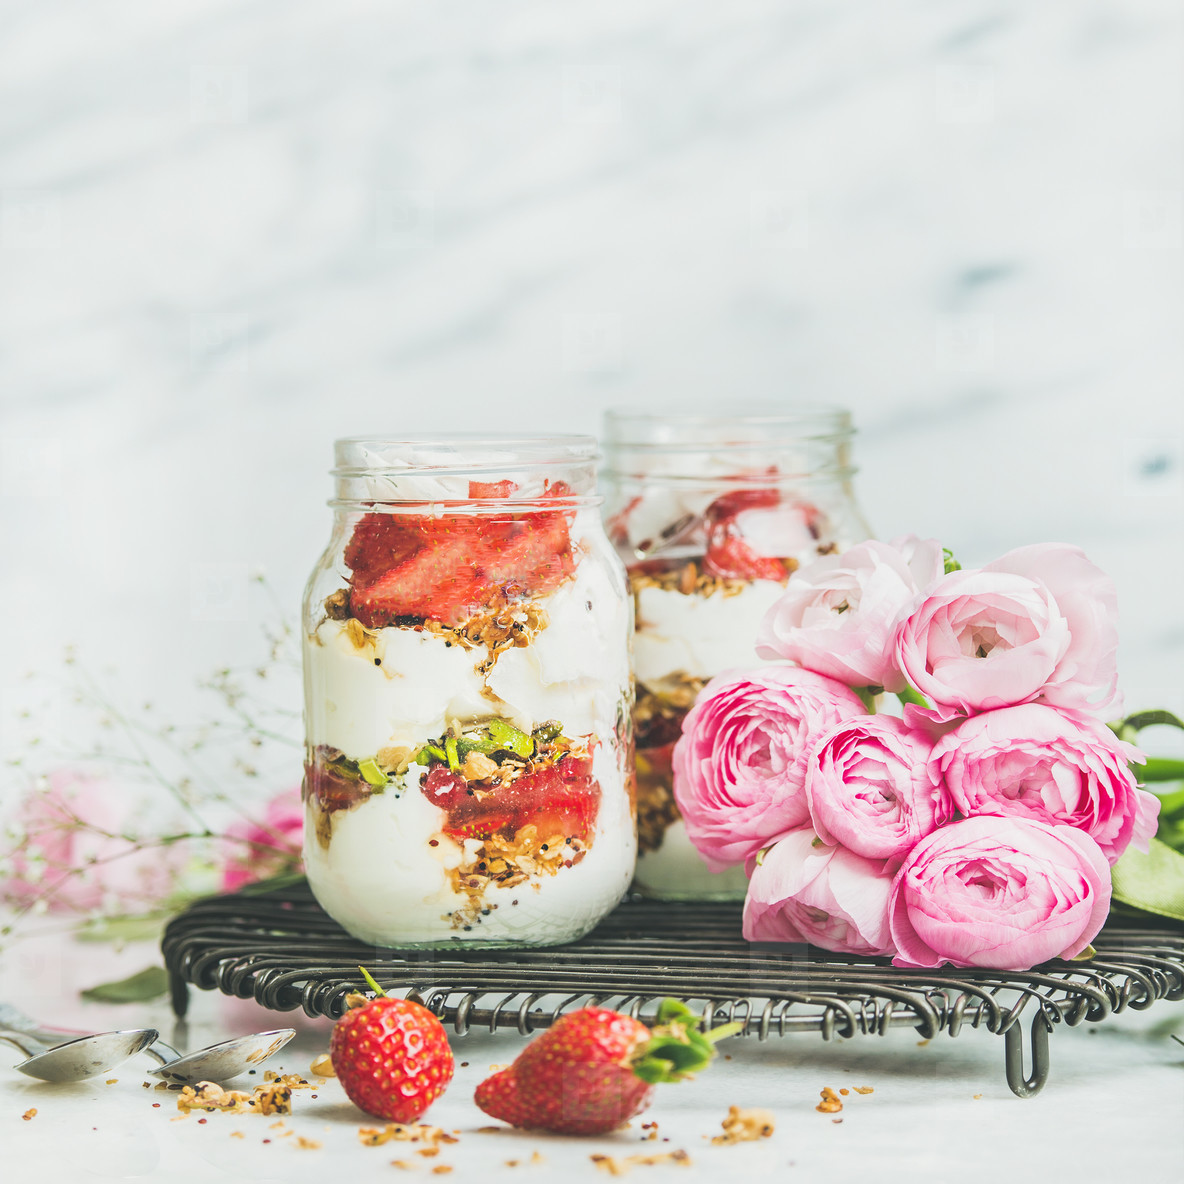 Healthy spring breakfast jars with pink raninkulus flowers  square crop